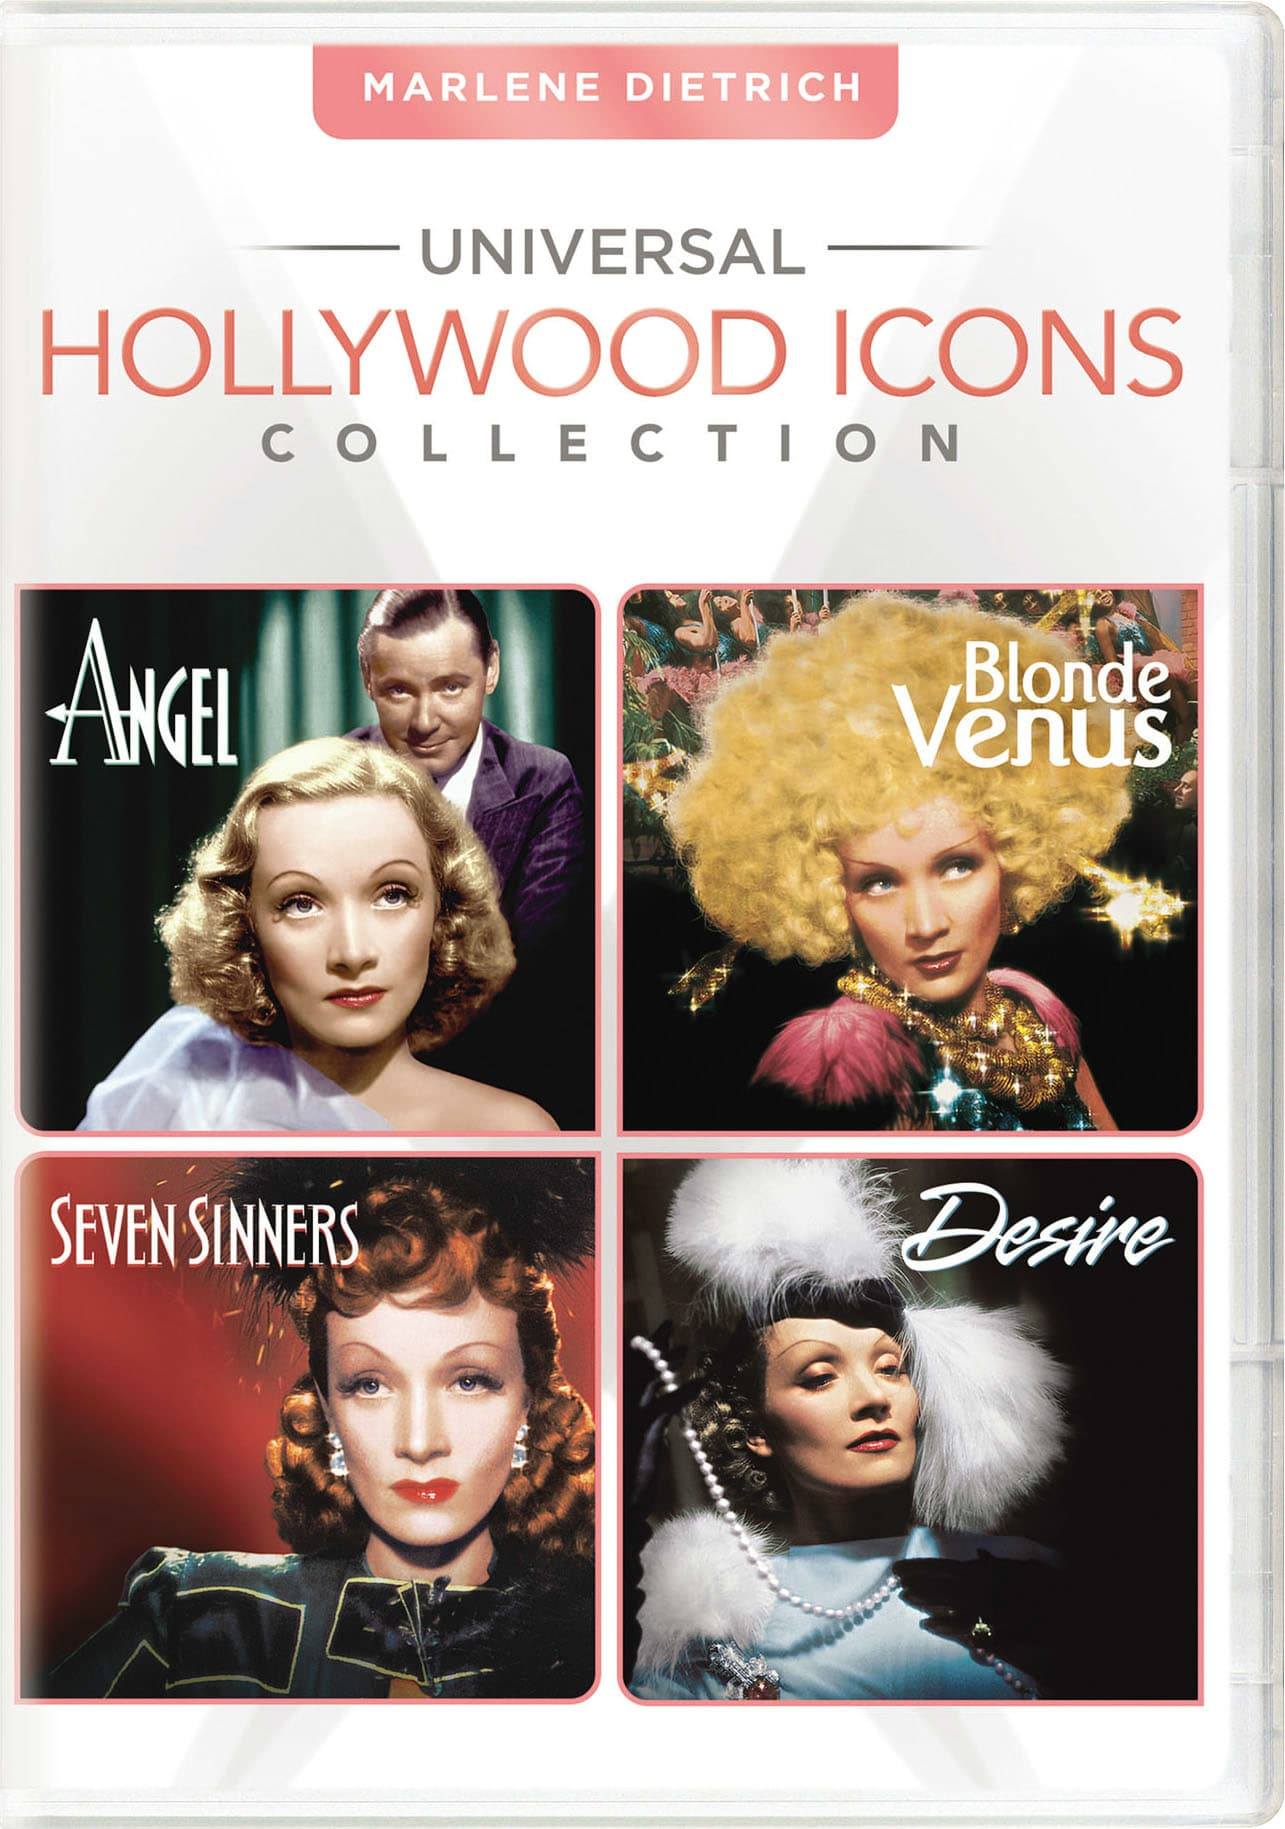 Universal Hollywood Icons Collection: Marlene Dietrich [DVD]